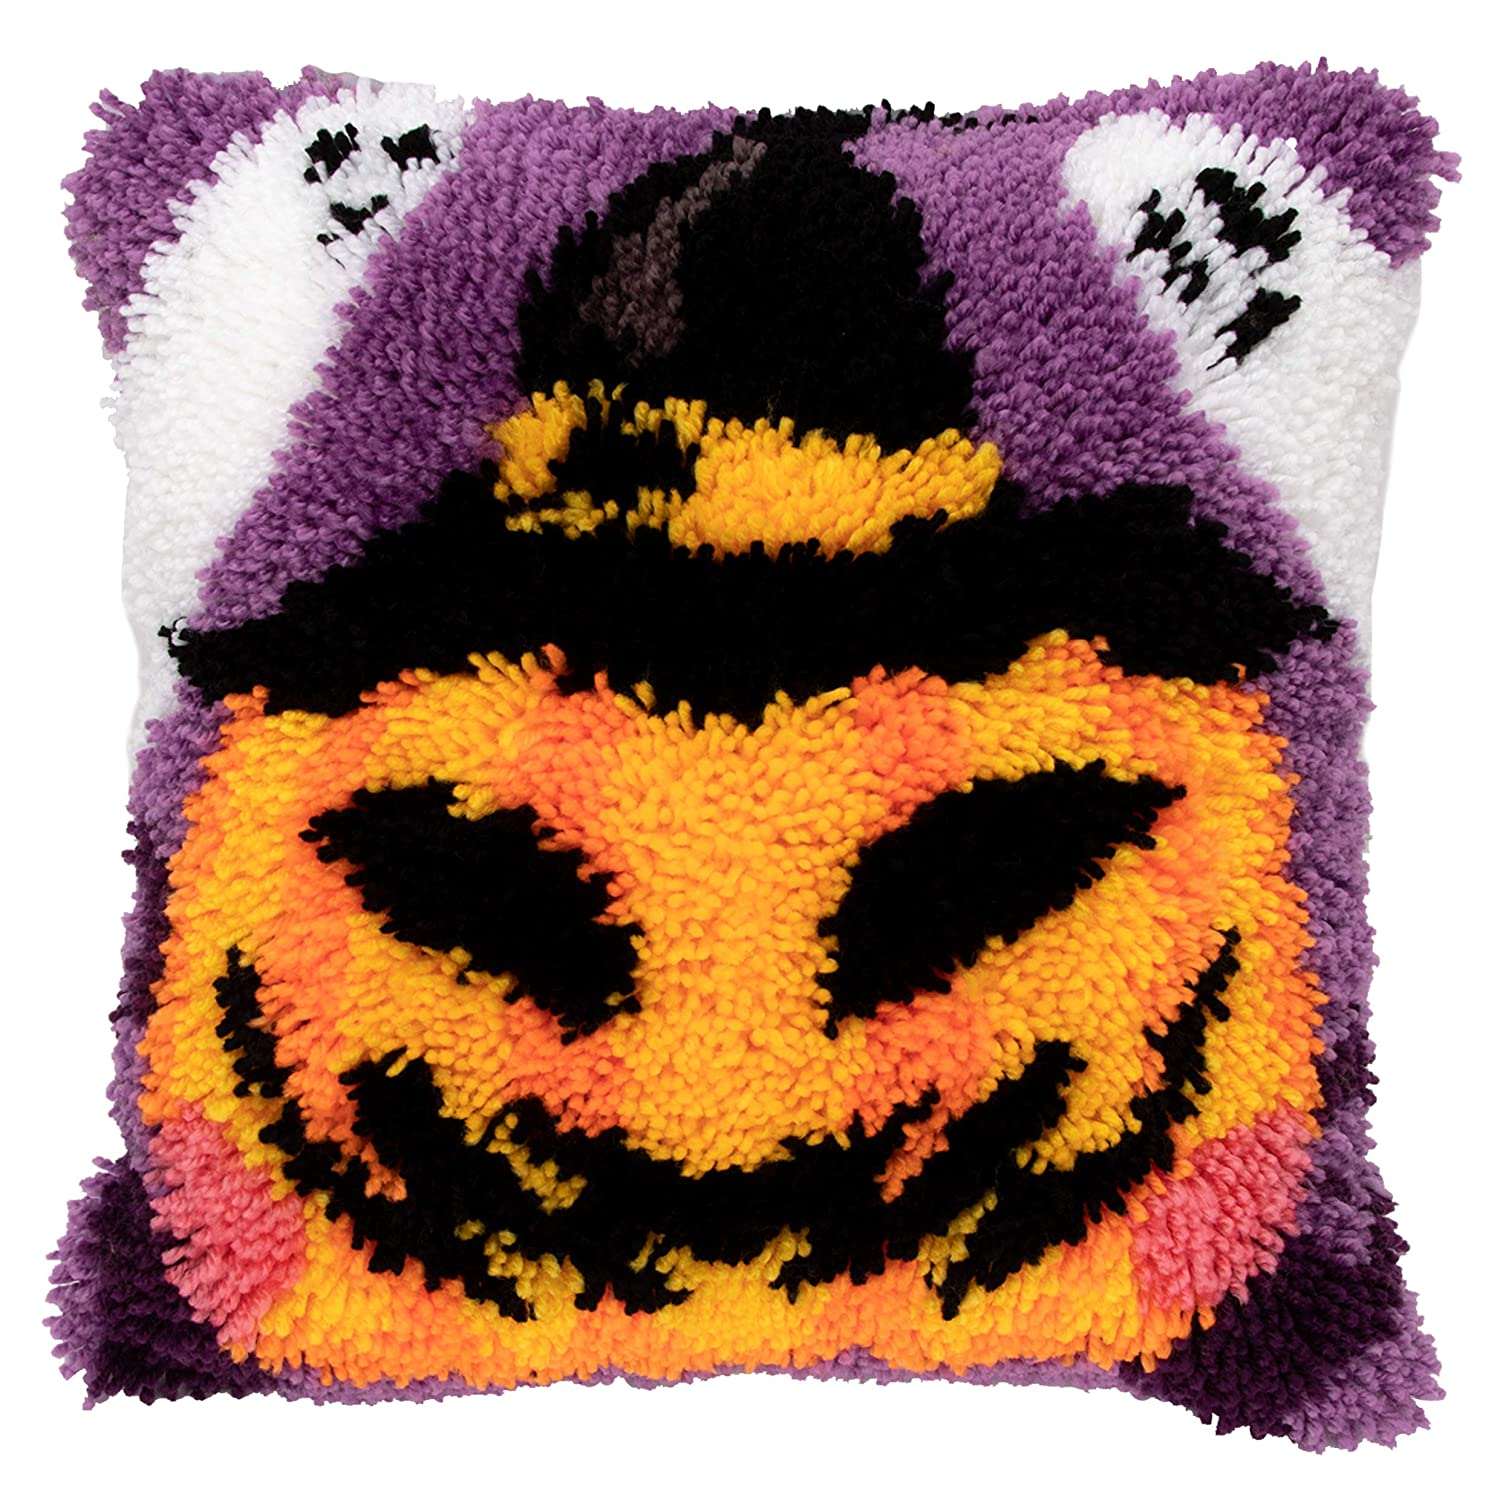 Beyond Your Thoughts Halloween Pumpkin Latch Hook Kits Jack-o-Lantern Funny Grimace with Pre-Printed Canvas DIY Shaggy Rug Pillow Cover 16x16 Inch